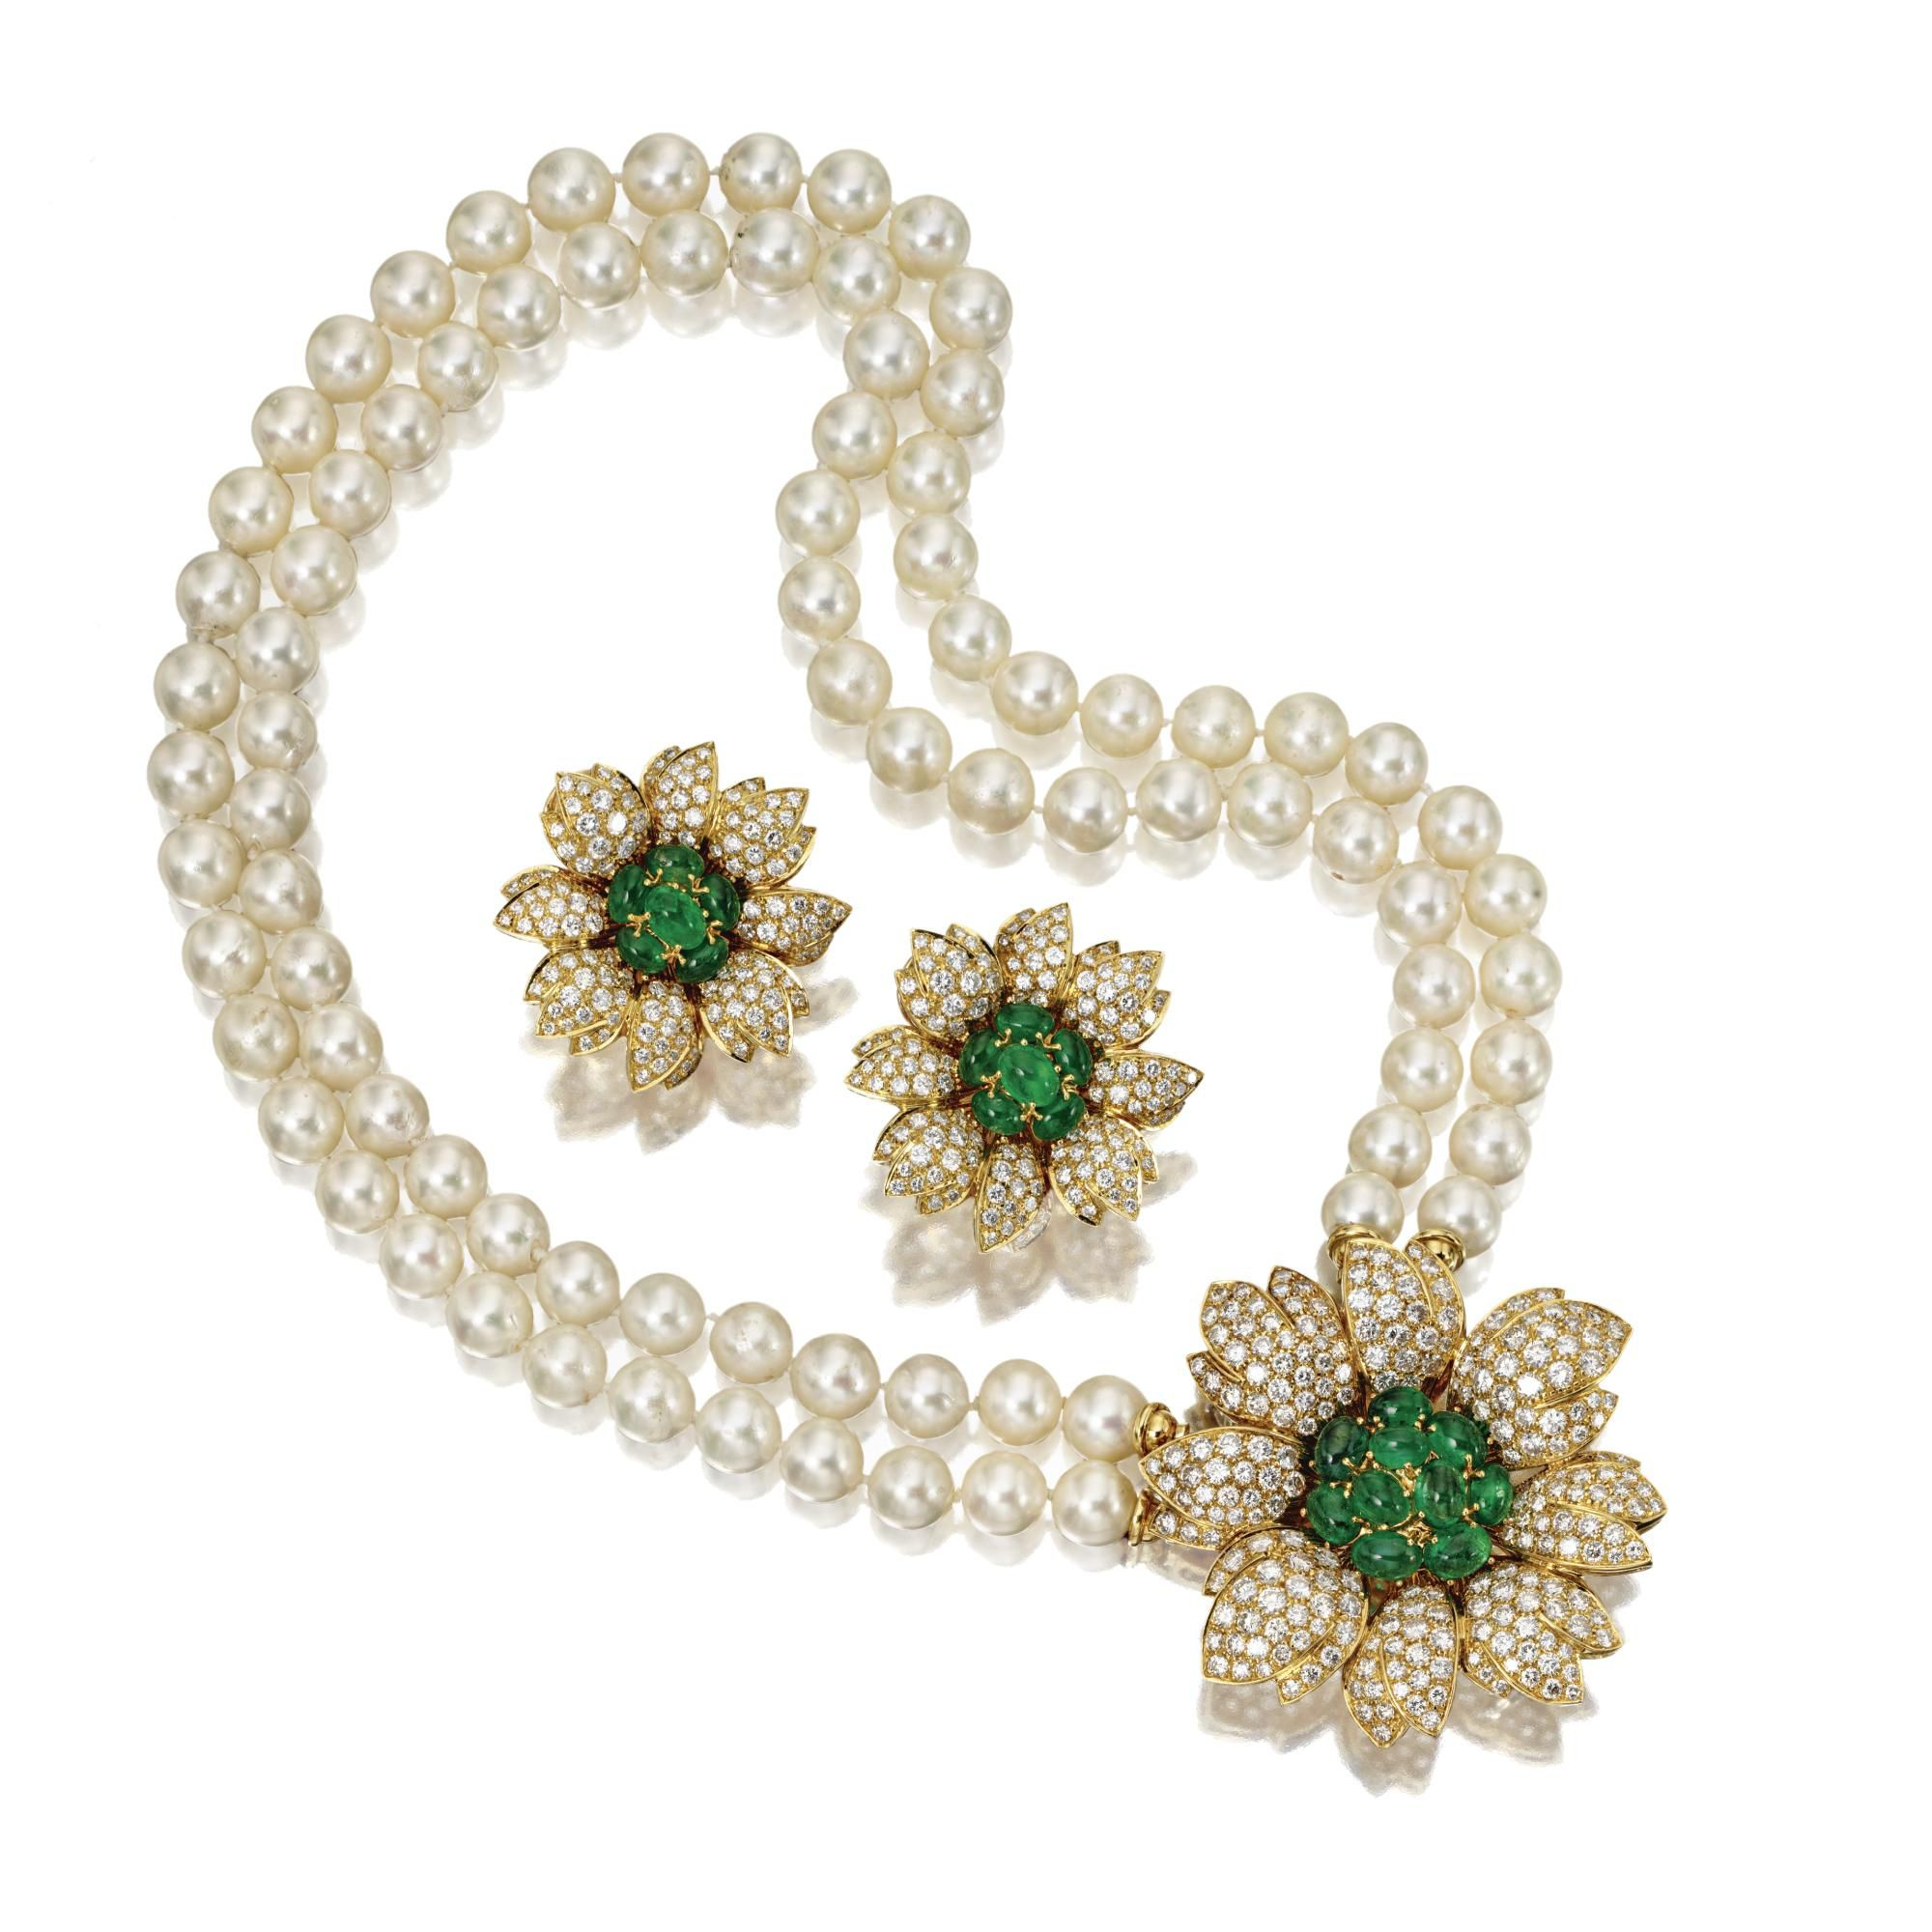 Emerald, Diamond And Cultured Pearl Necklace And Matching Earclips, Giovane   Lot  Sotheby's